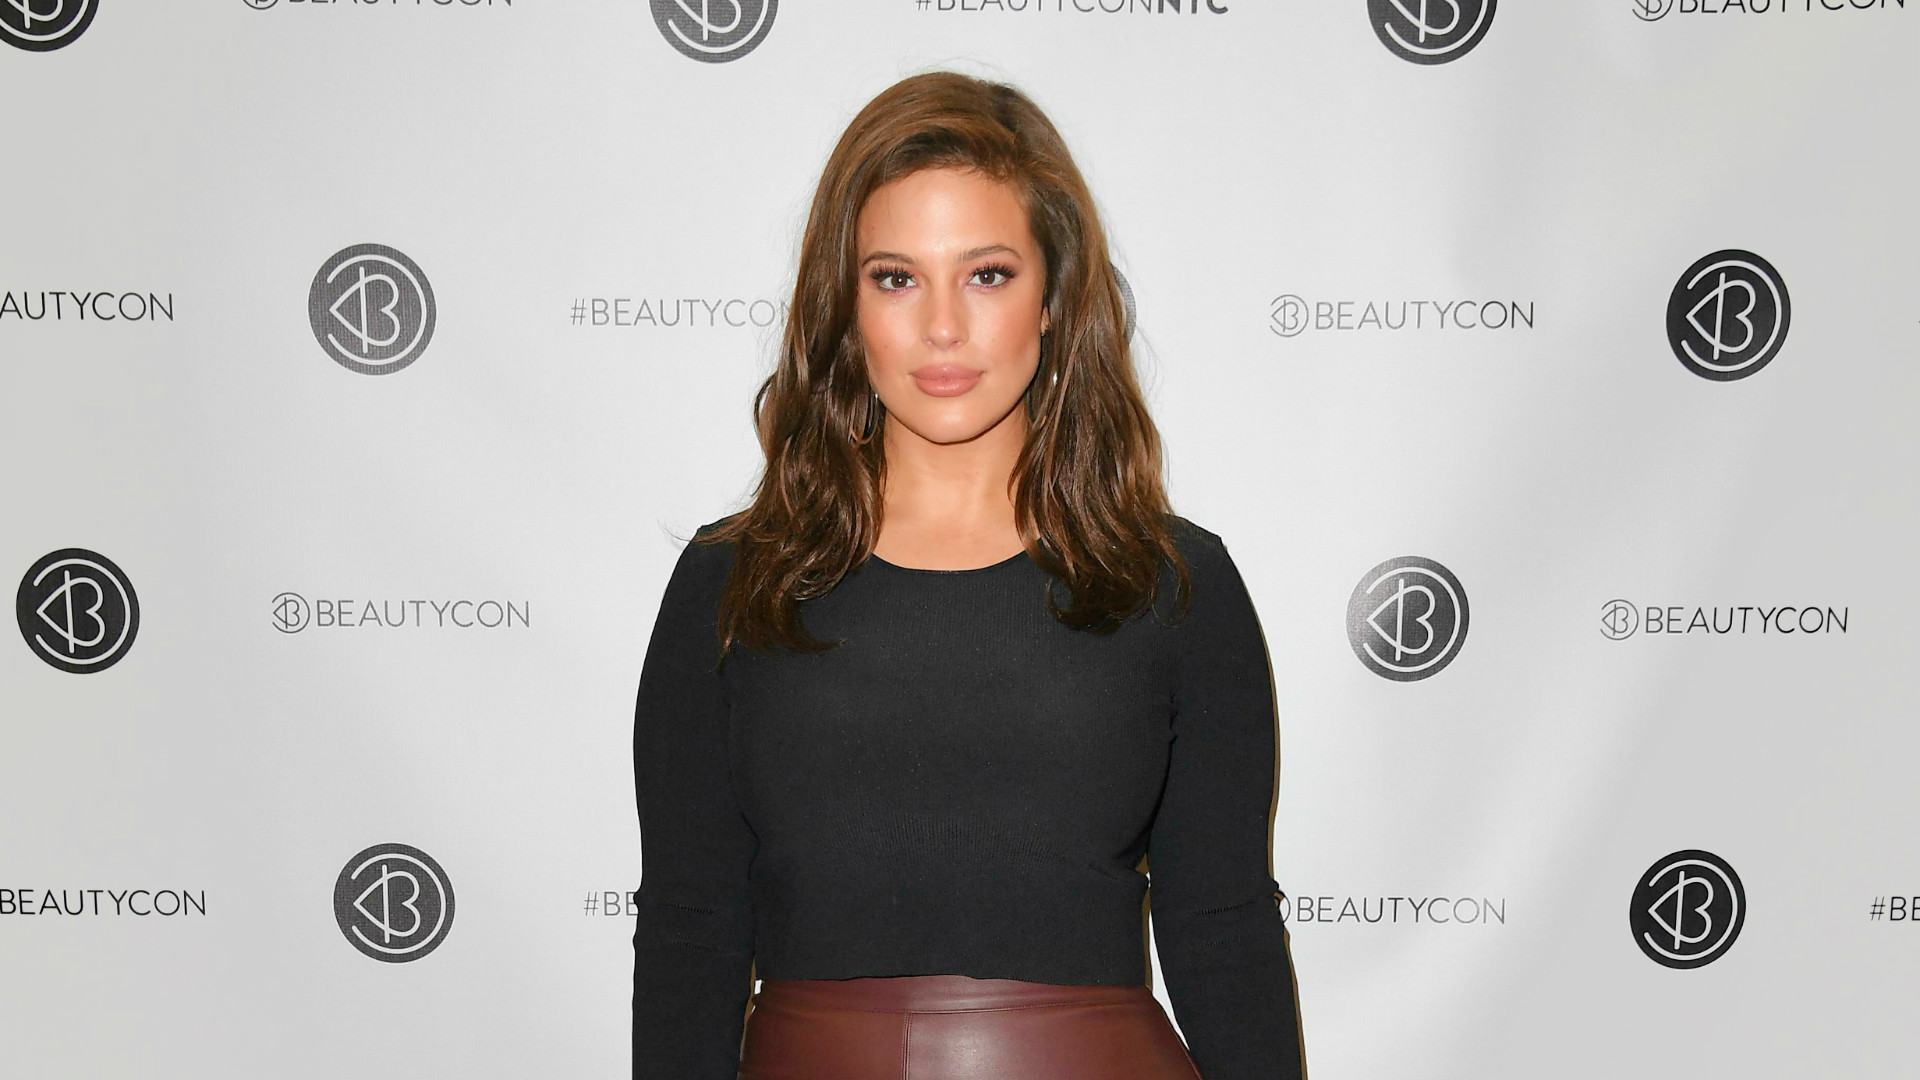 Plus Size model and body activist Ashley Graham.